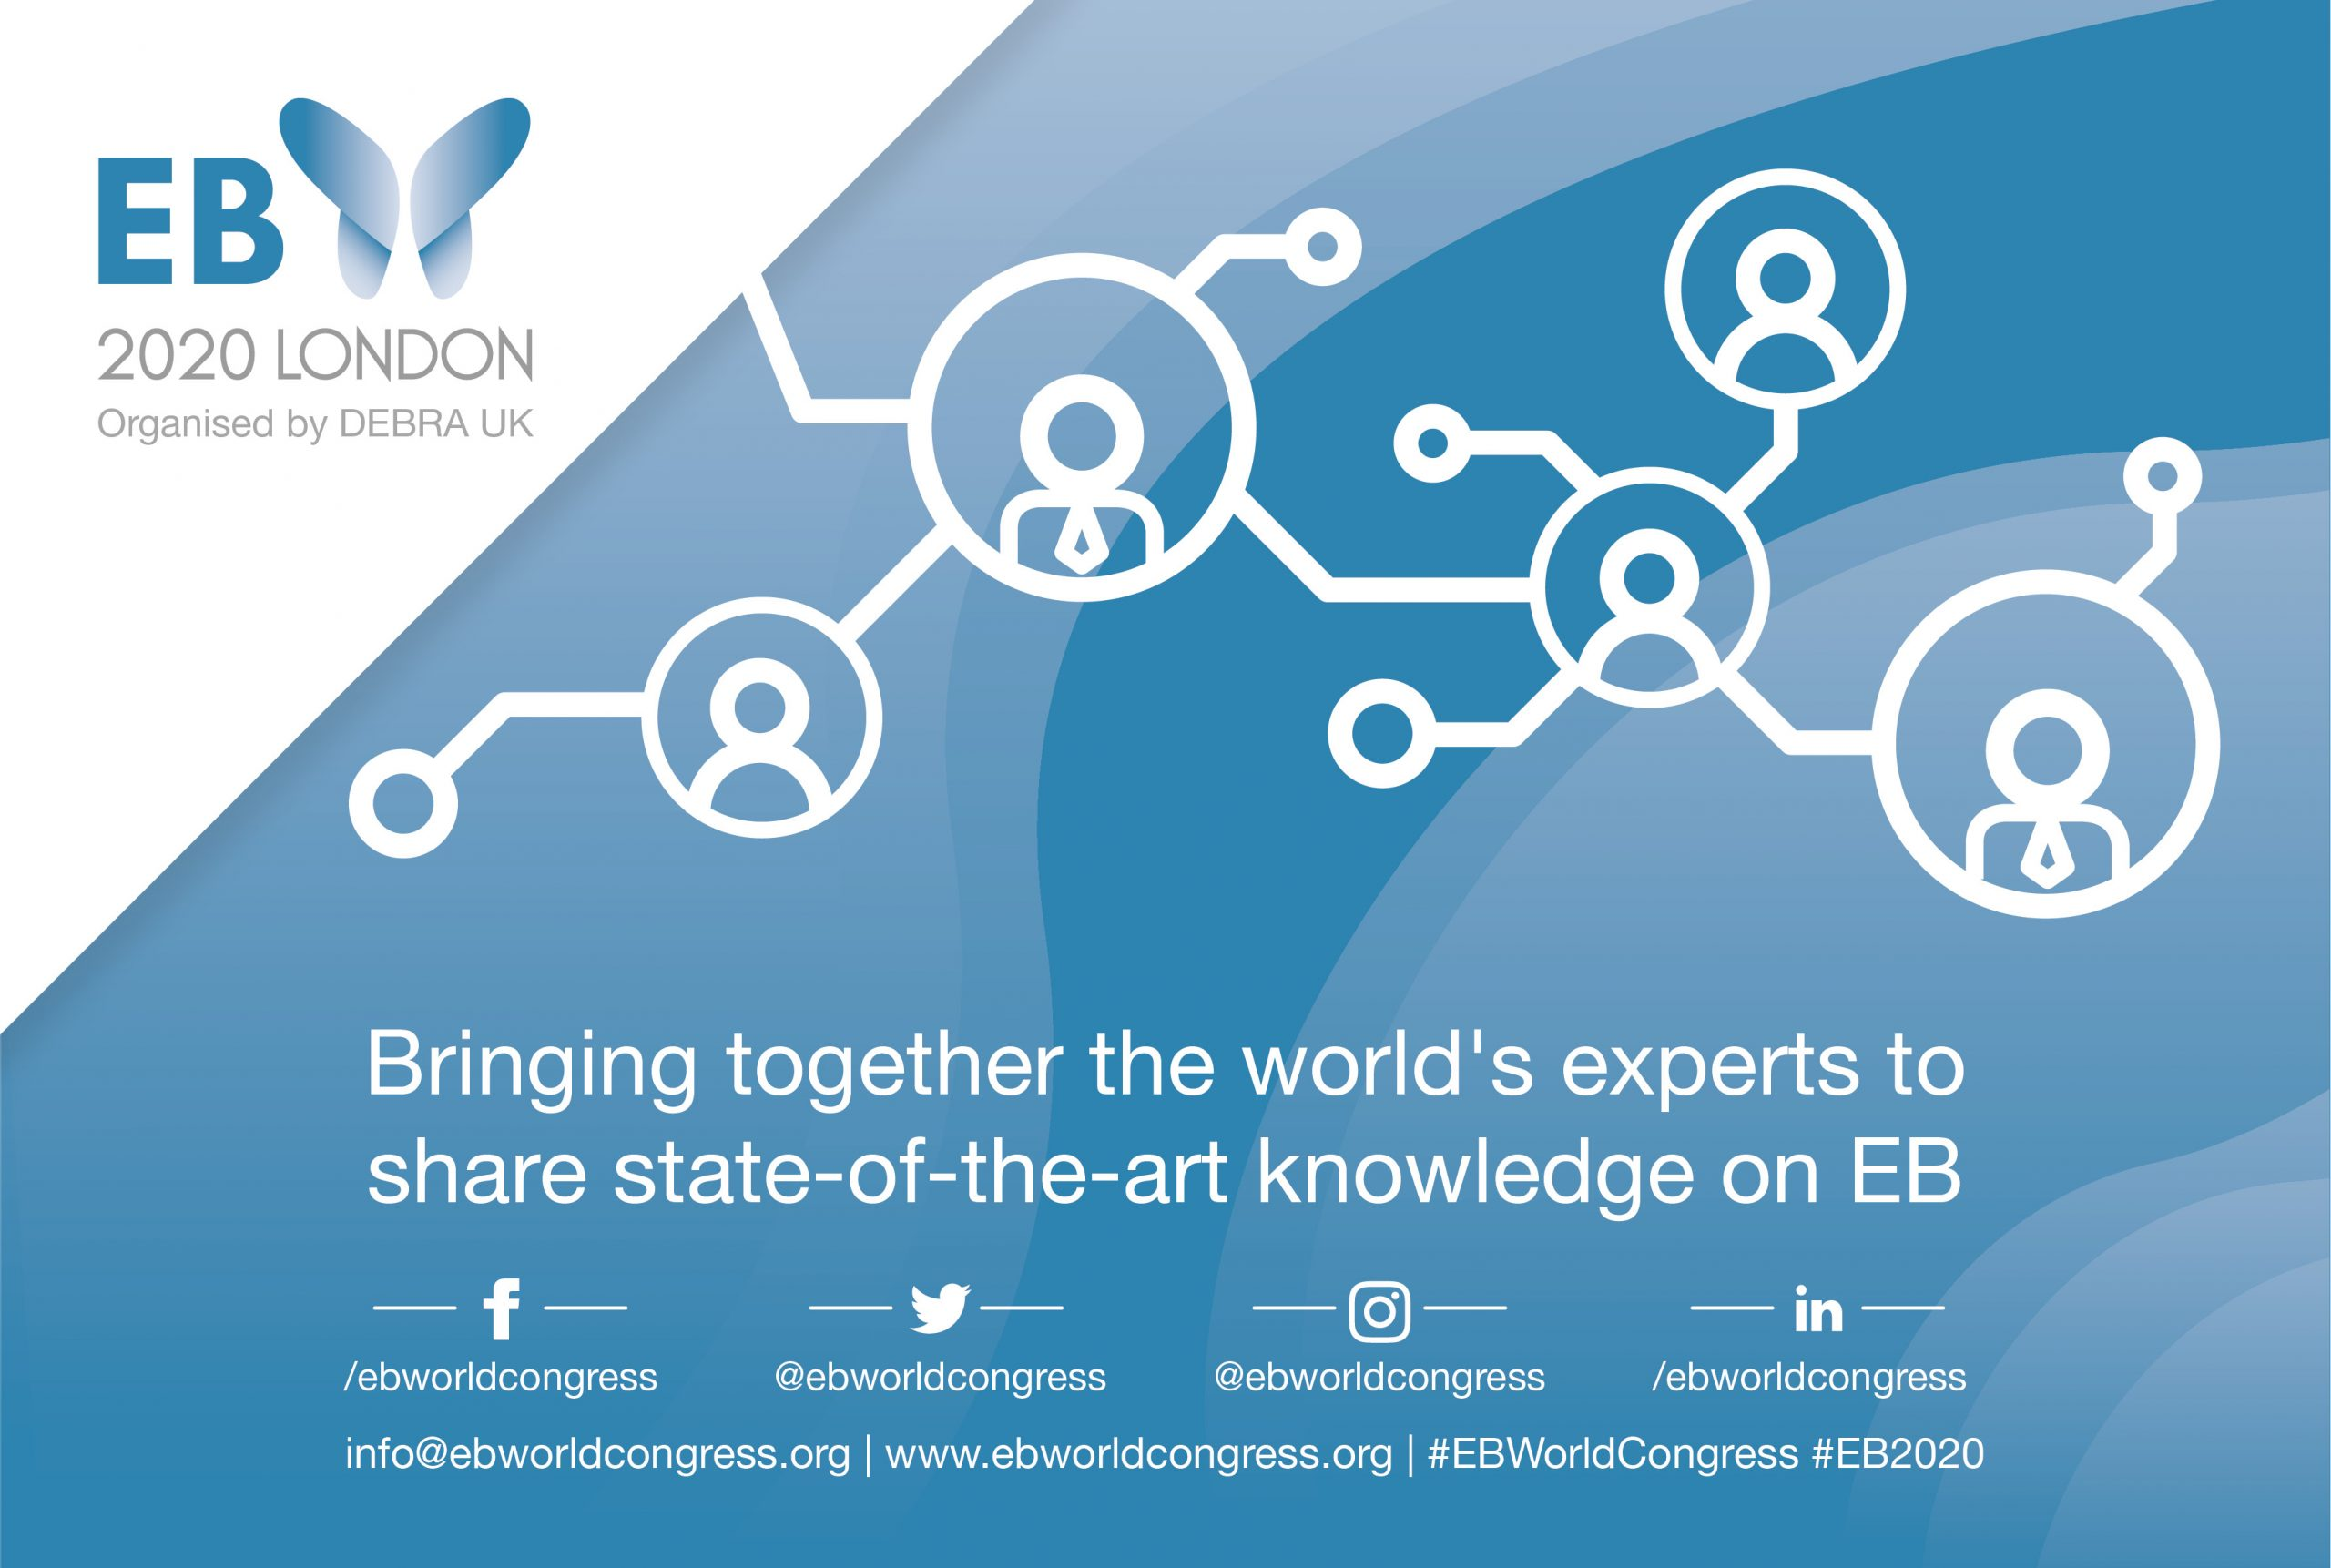 EB World Congress 2020 in London